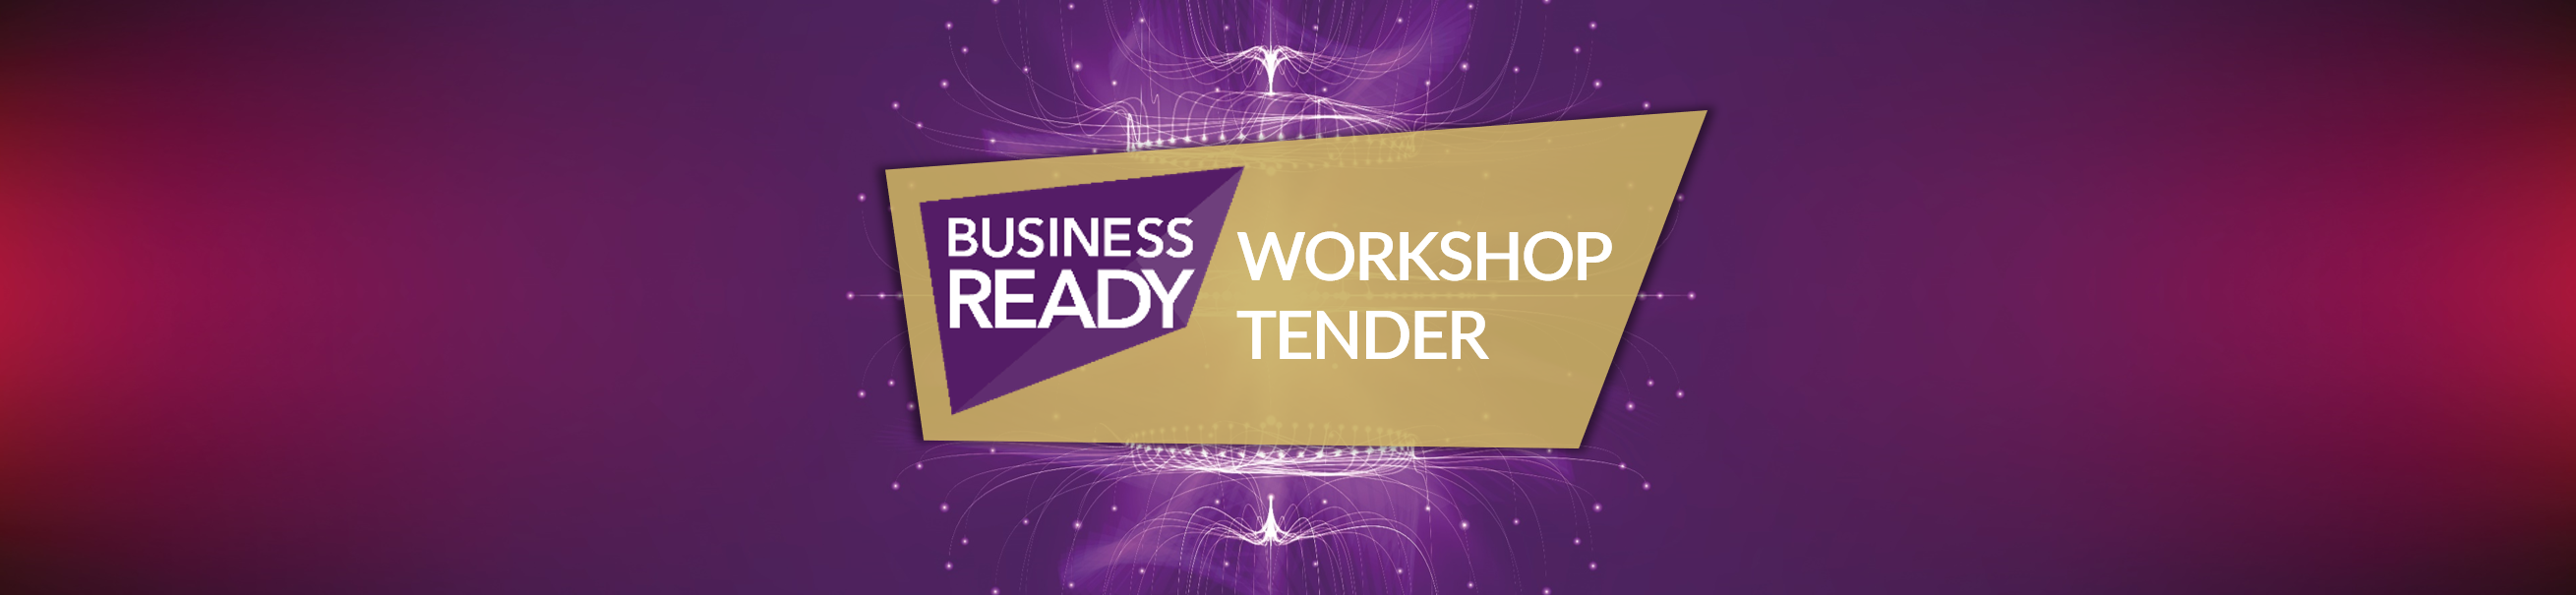 Business Ready invitation to tender for workshops